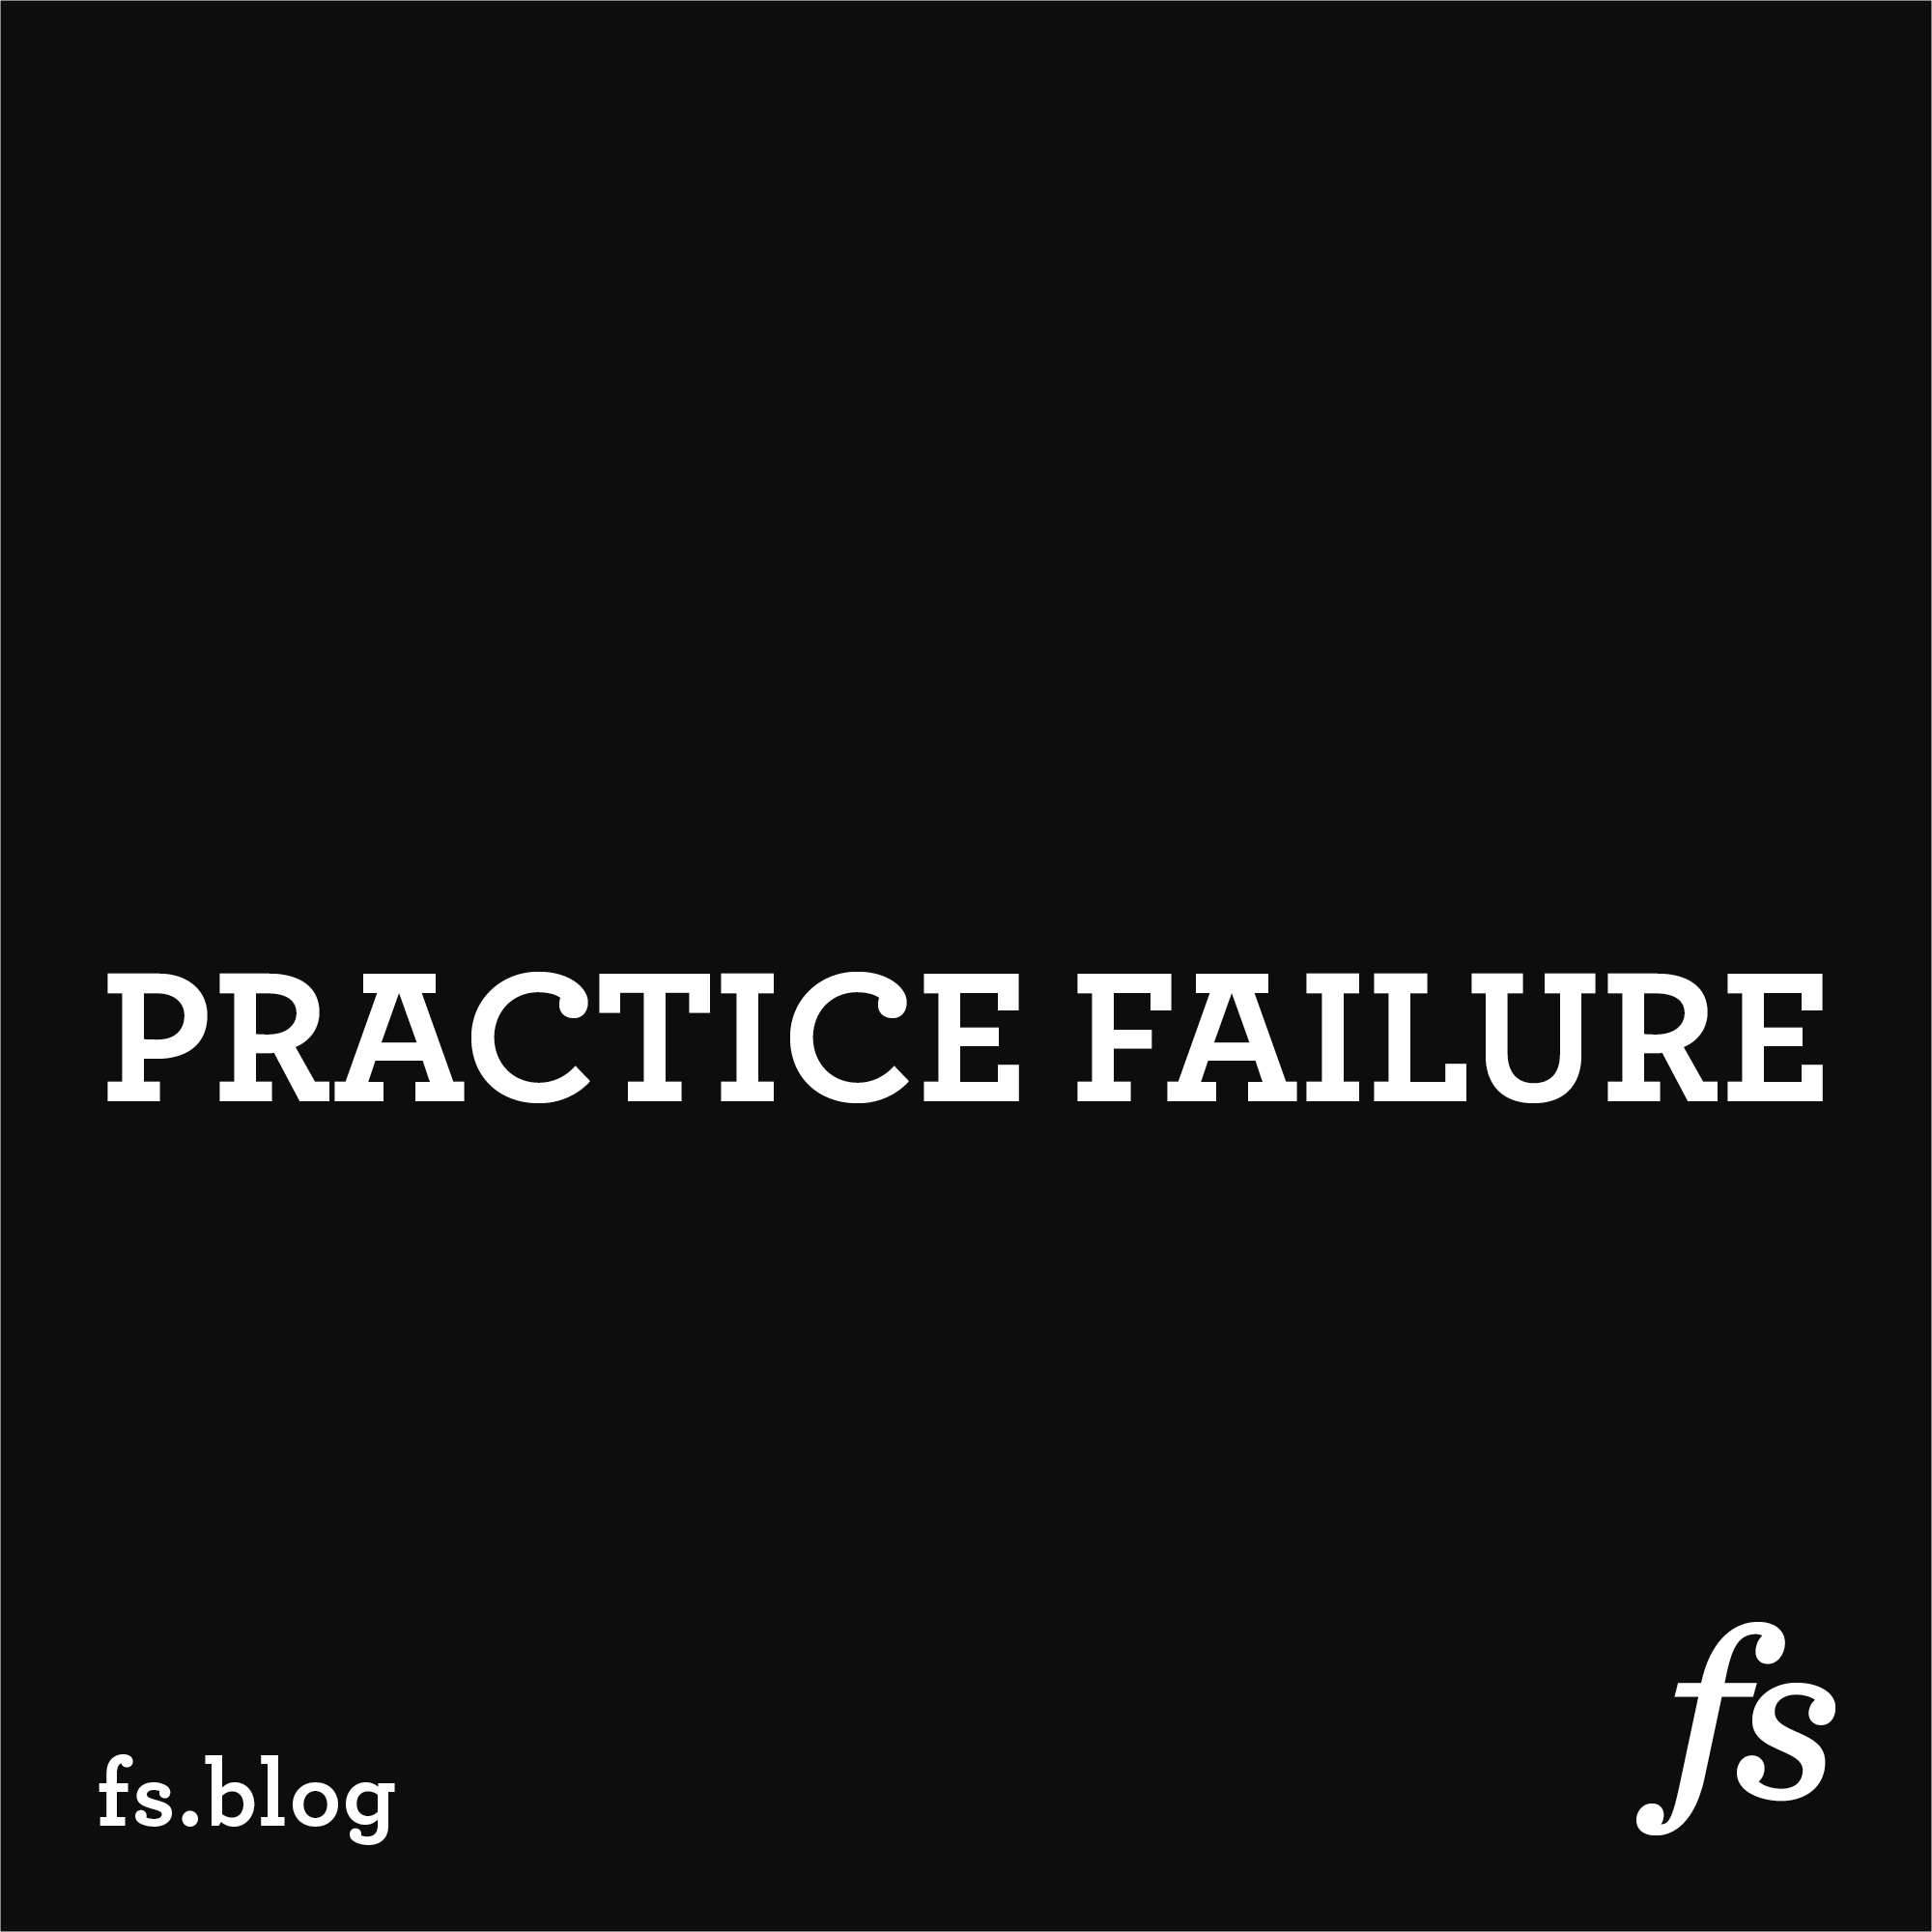 Why You Should Practice Failure